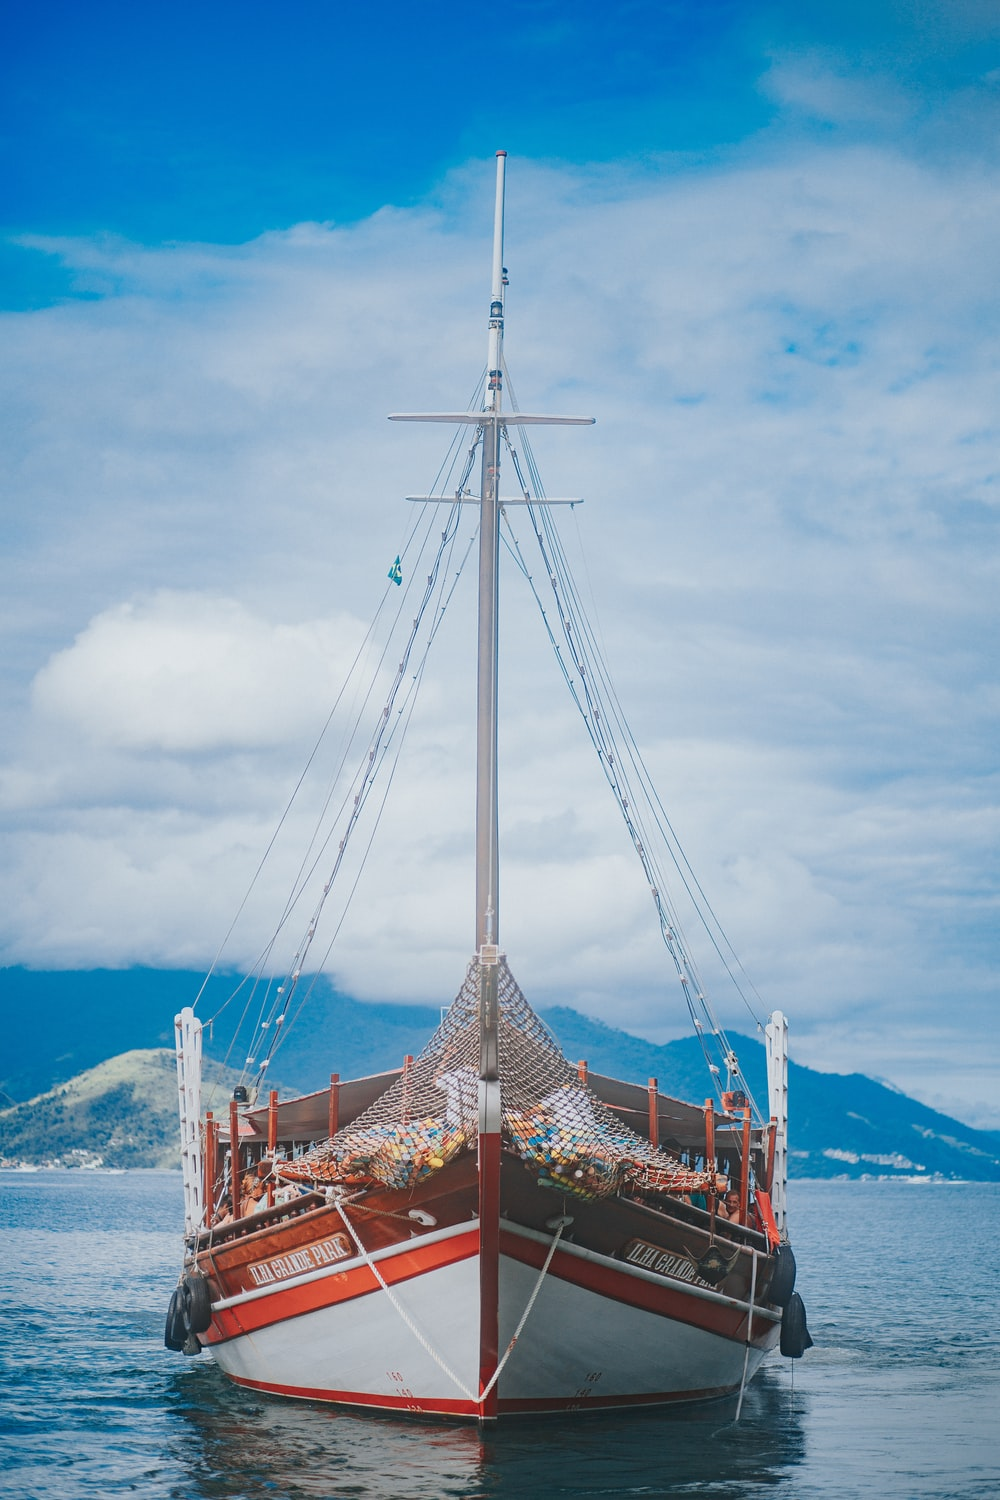 brown wooden boat on sea under white clouds and blue sky during daytime